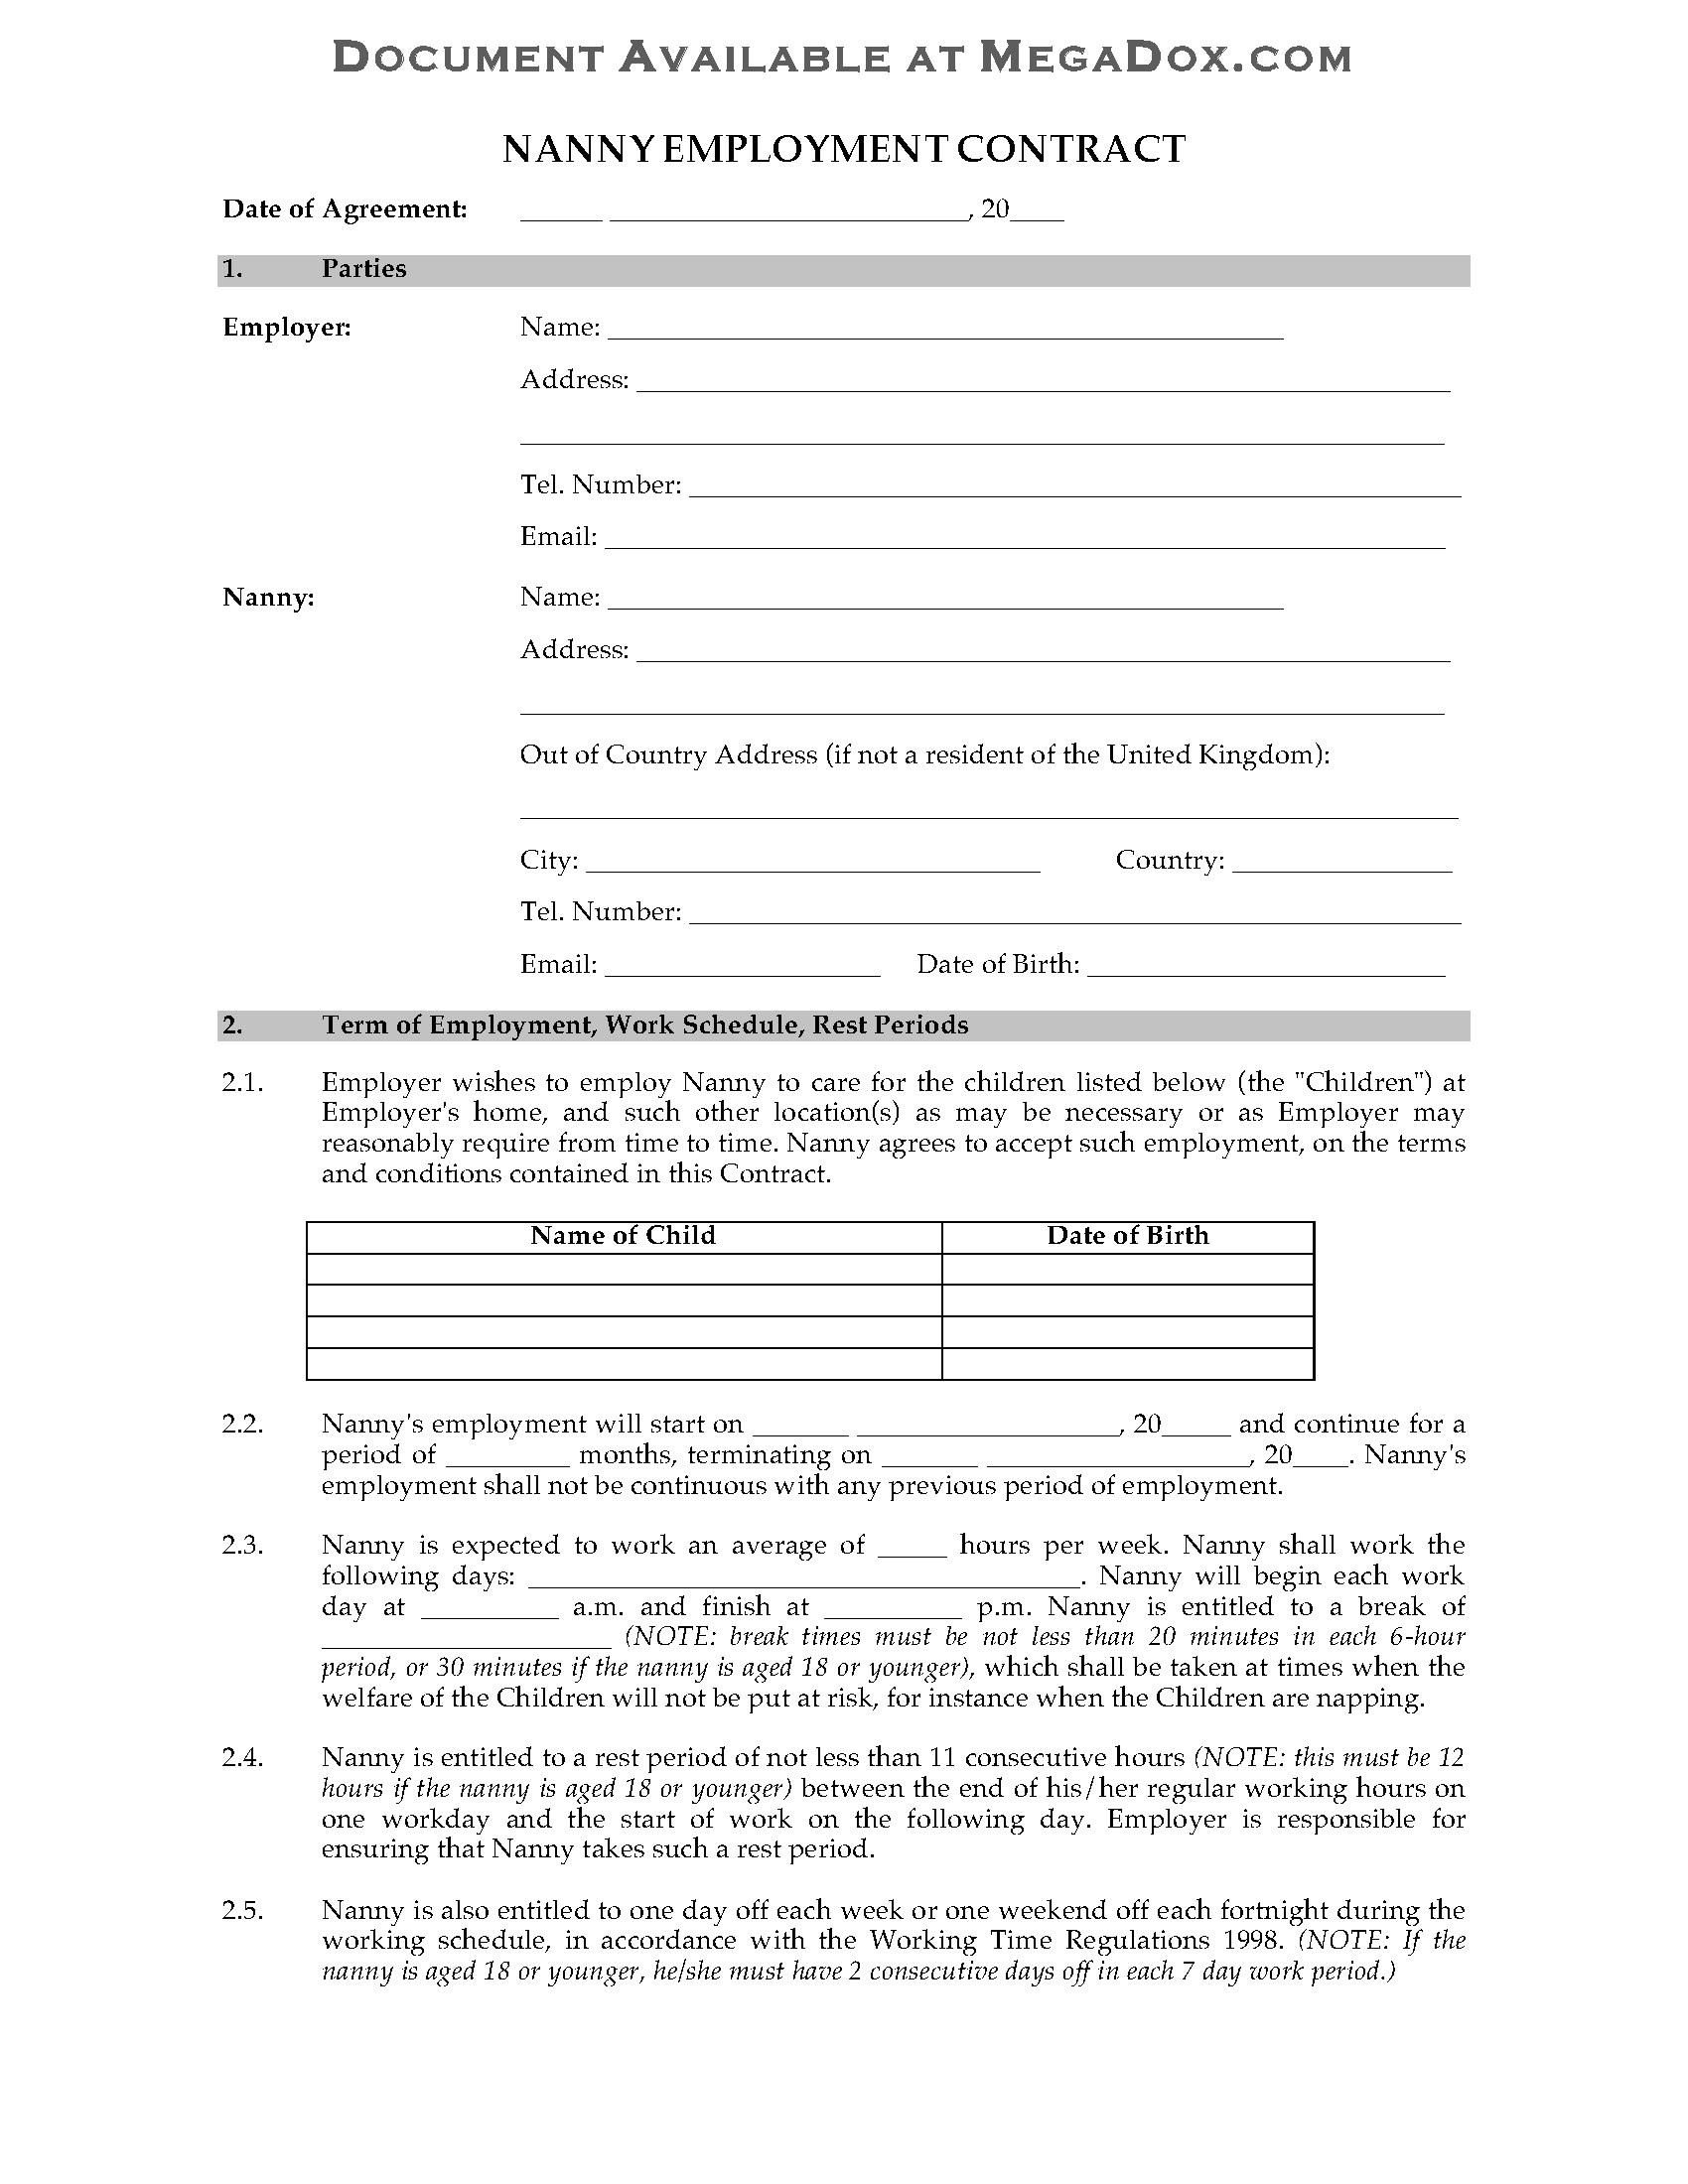 Nanny Contract Template Uk Uk Nanny Employment Contract Legal forms and Business